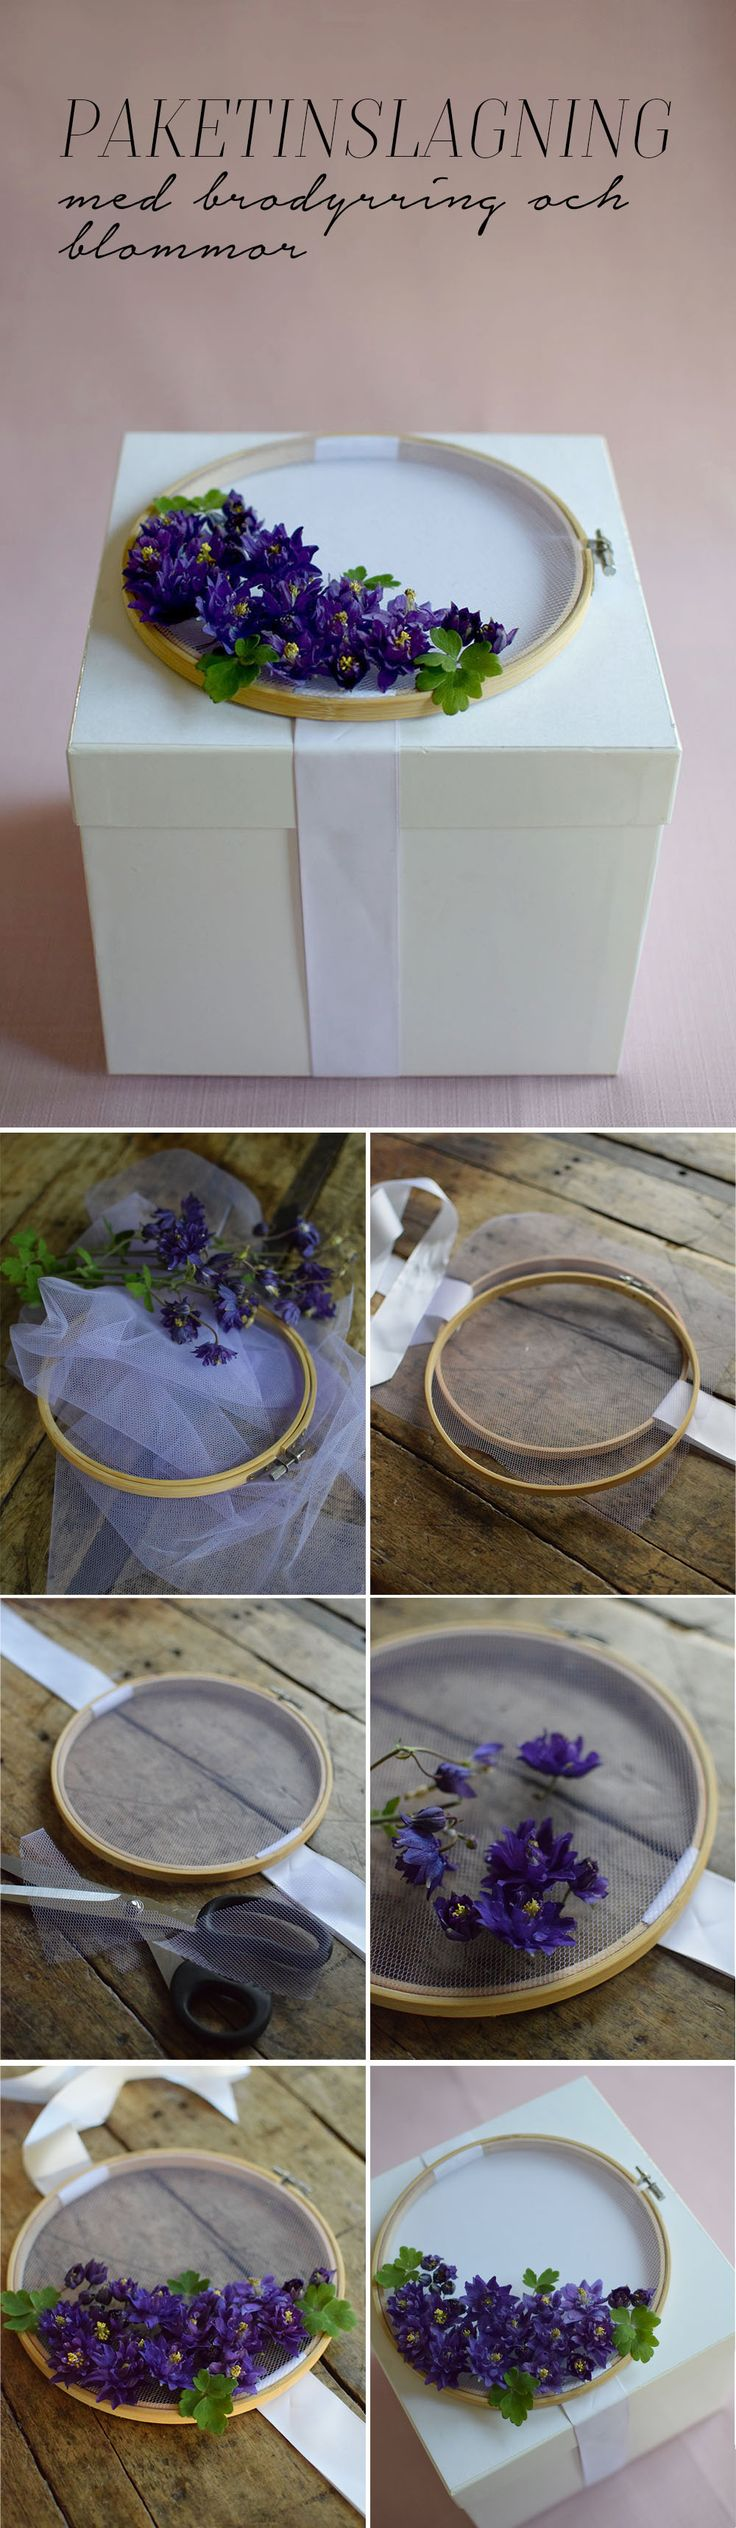 DIY, gift wrapping with flowers, embroidery ring, pyssel, slå in paket, paketinslagning med blommor och broderiring @helenalyth